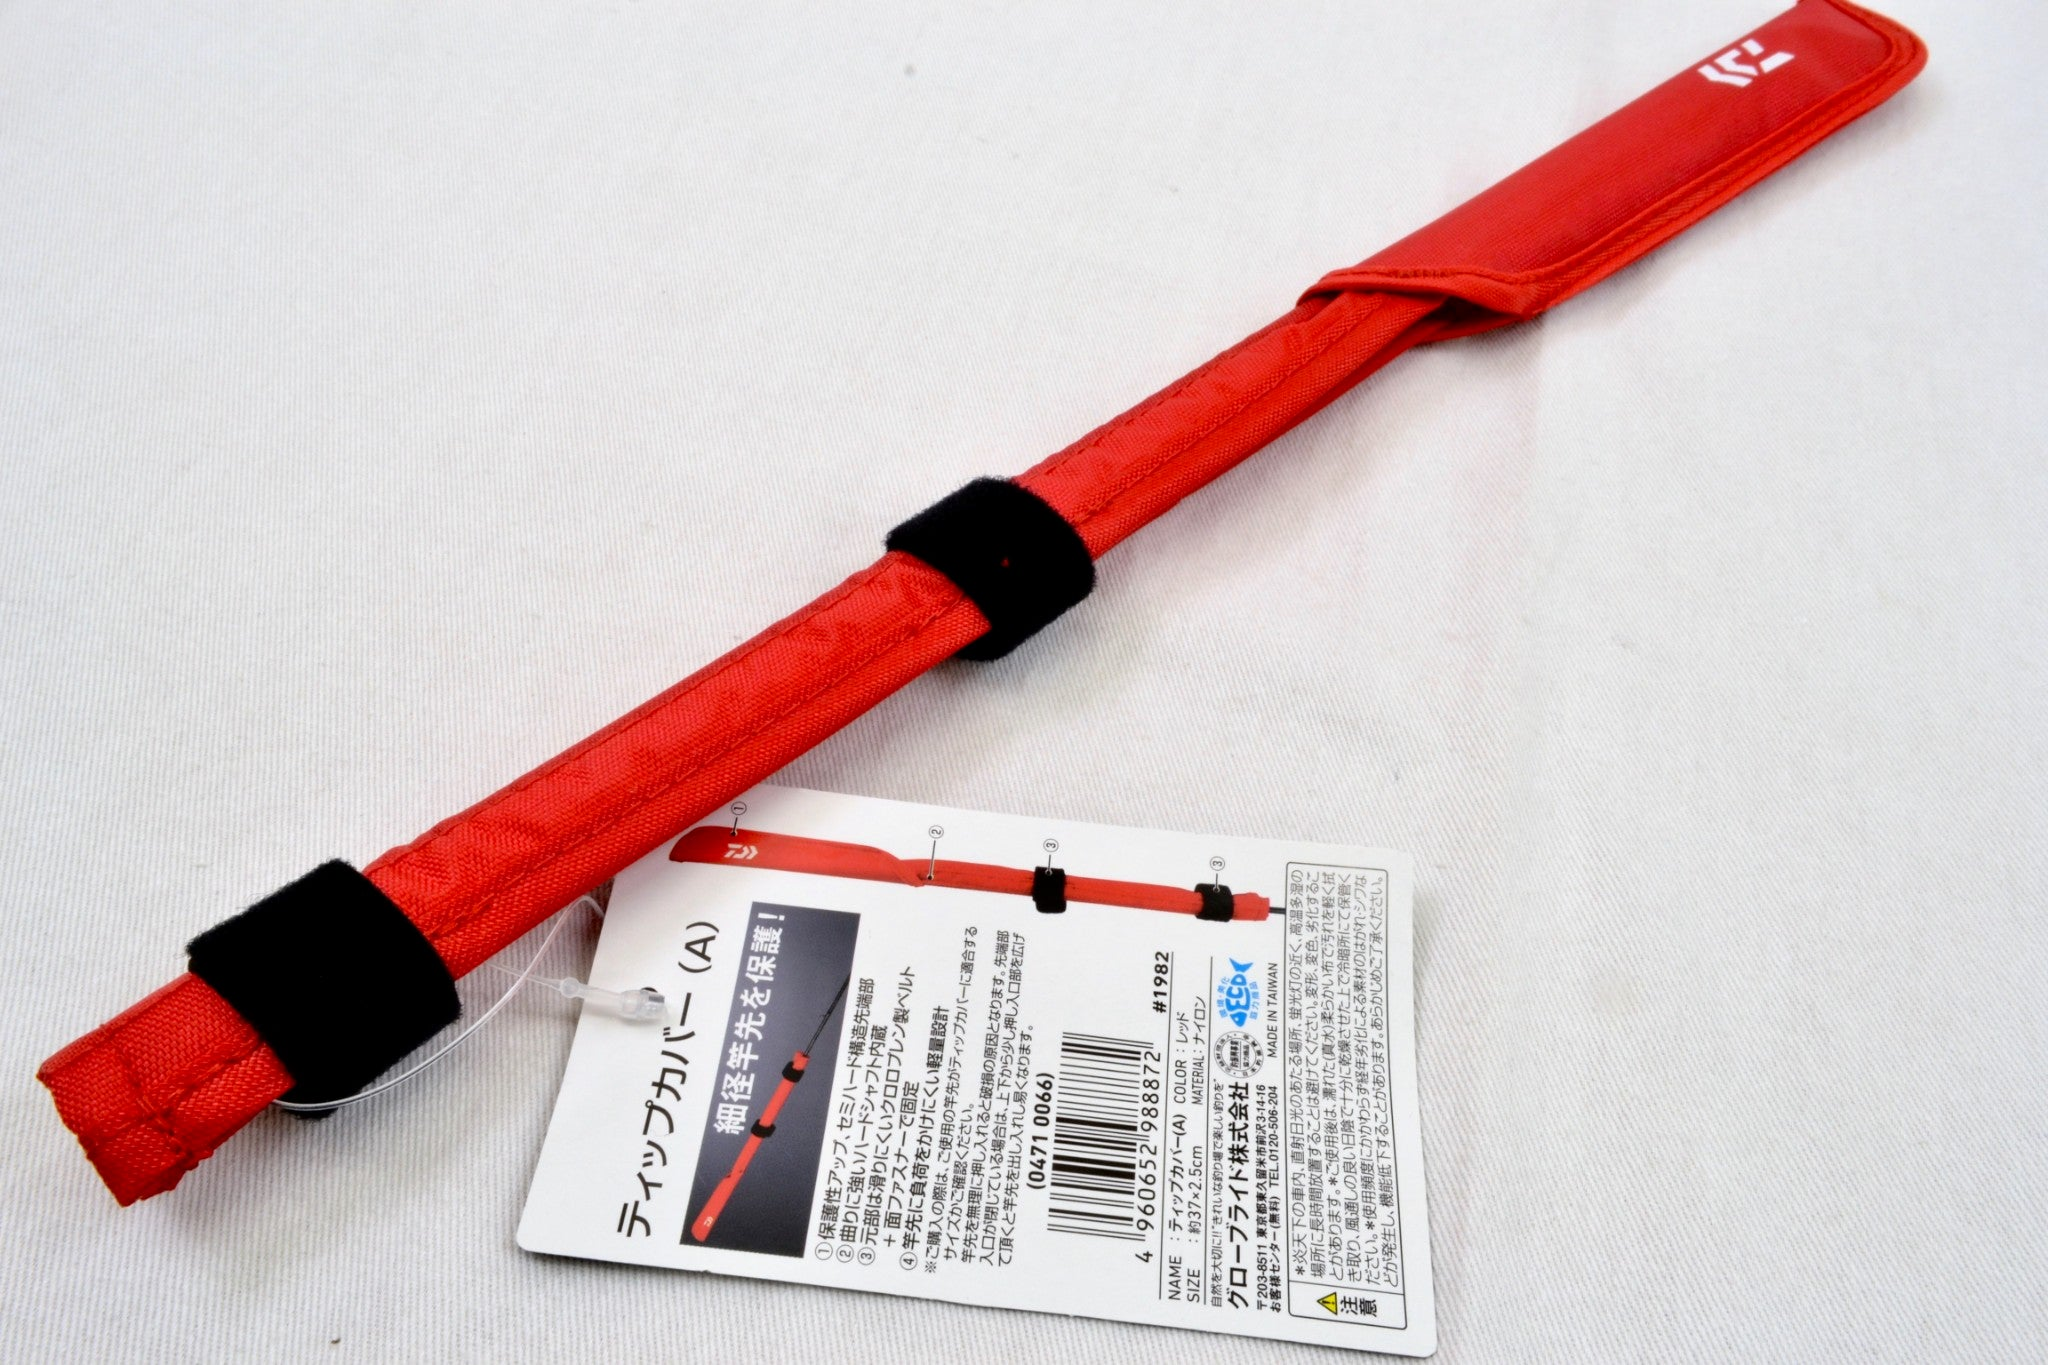 Free Shipping! Daiwa Tip Cover A #Red 37 x 2.5cm